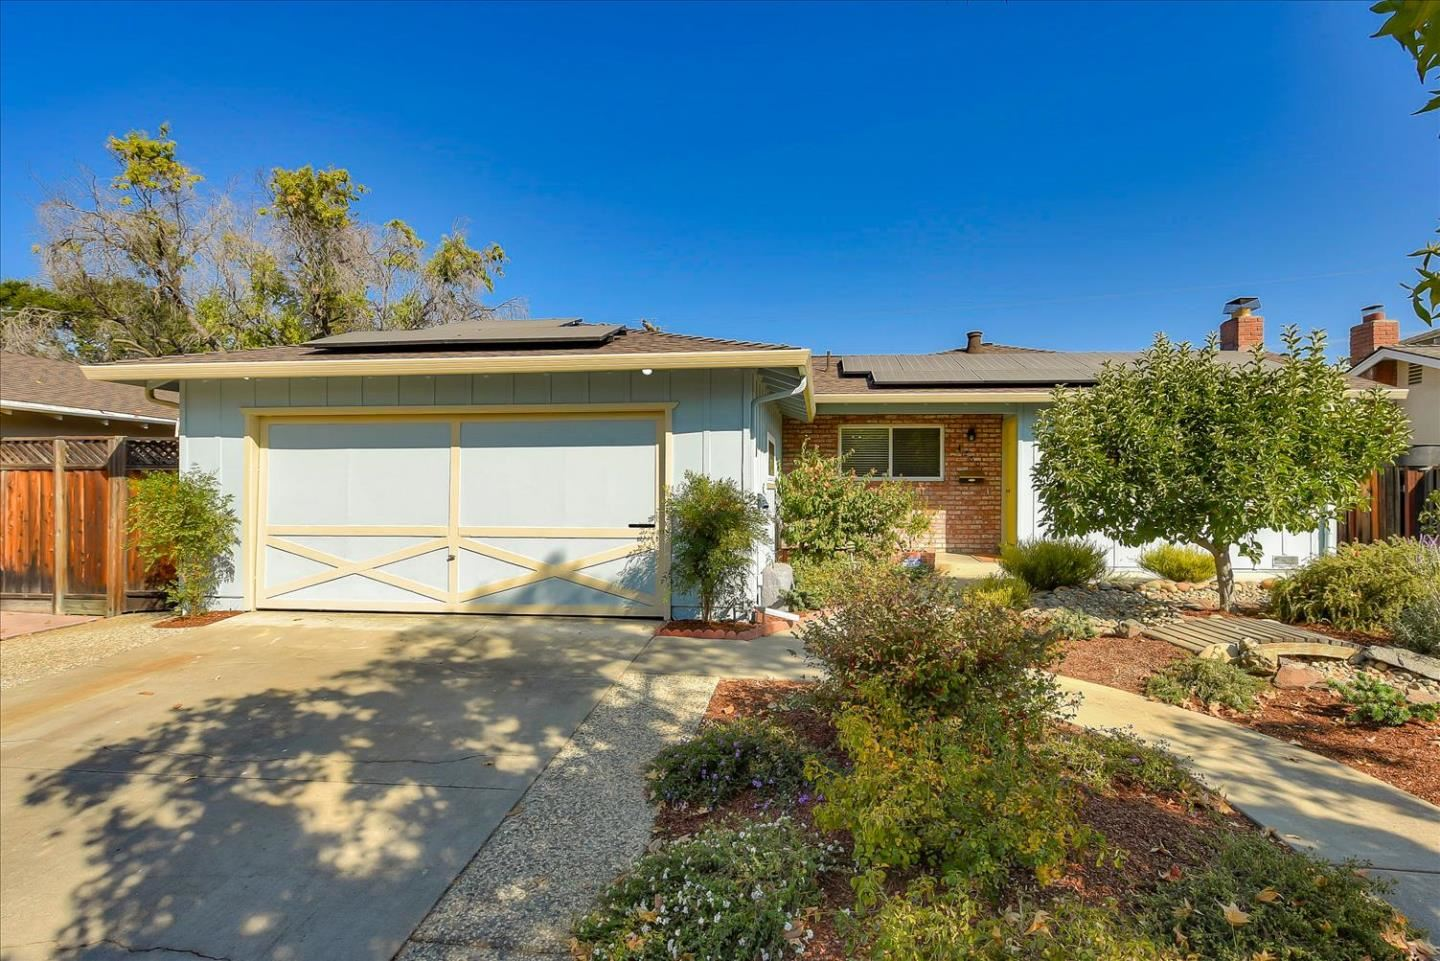 Photo for 4260 Rondeau DR, SAN JOSE, CA 95124 (MLS # ML81815859)